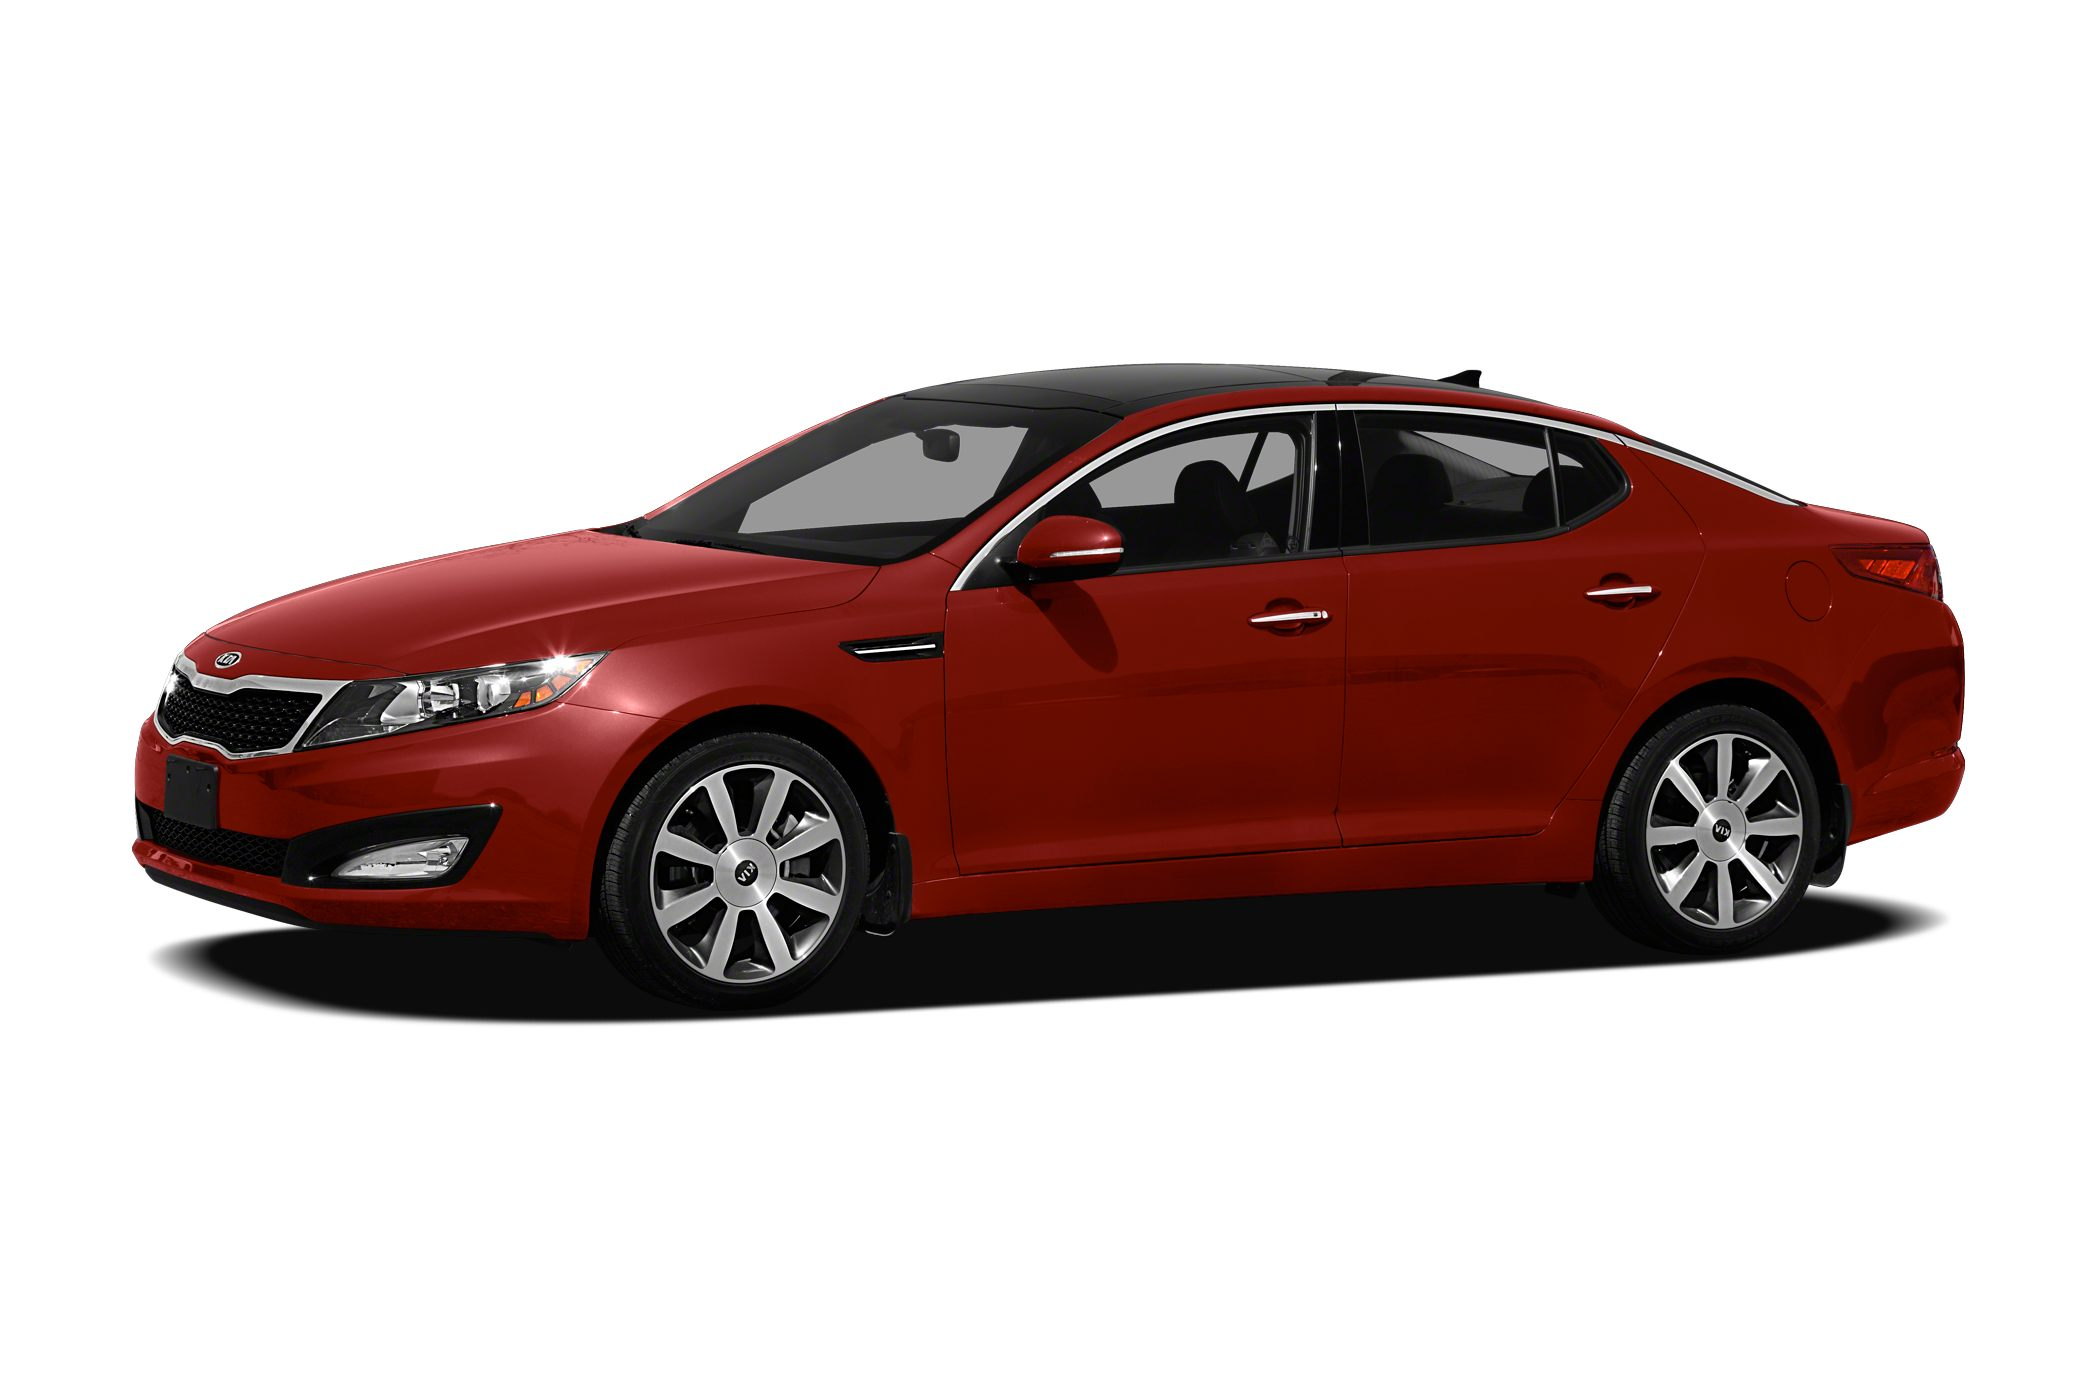 2012 Kia Optima LX Sedan for sale in Johnstown for $15,490 with 33,220 miles